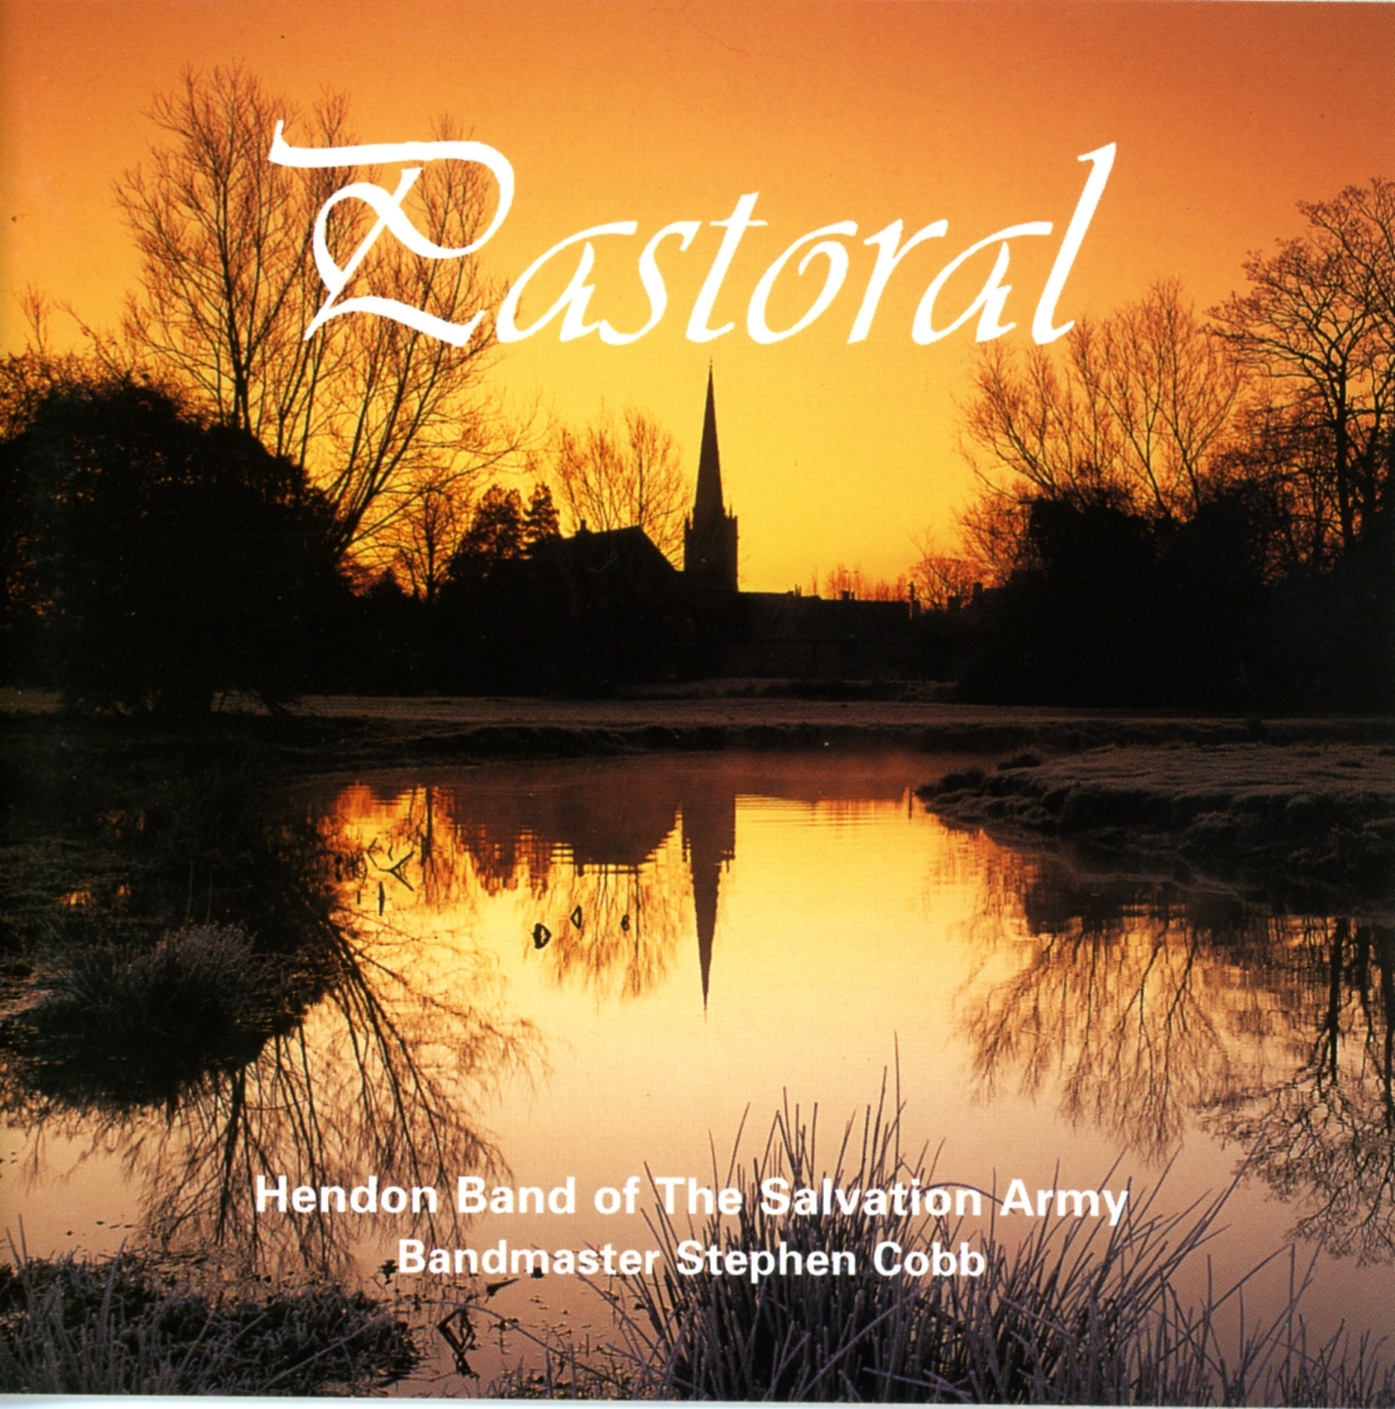 Pastoral - Download